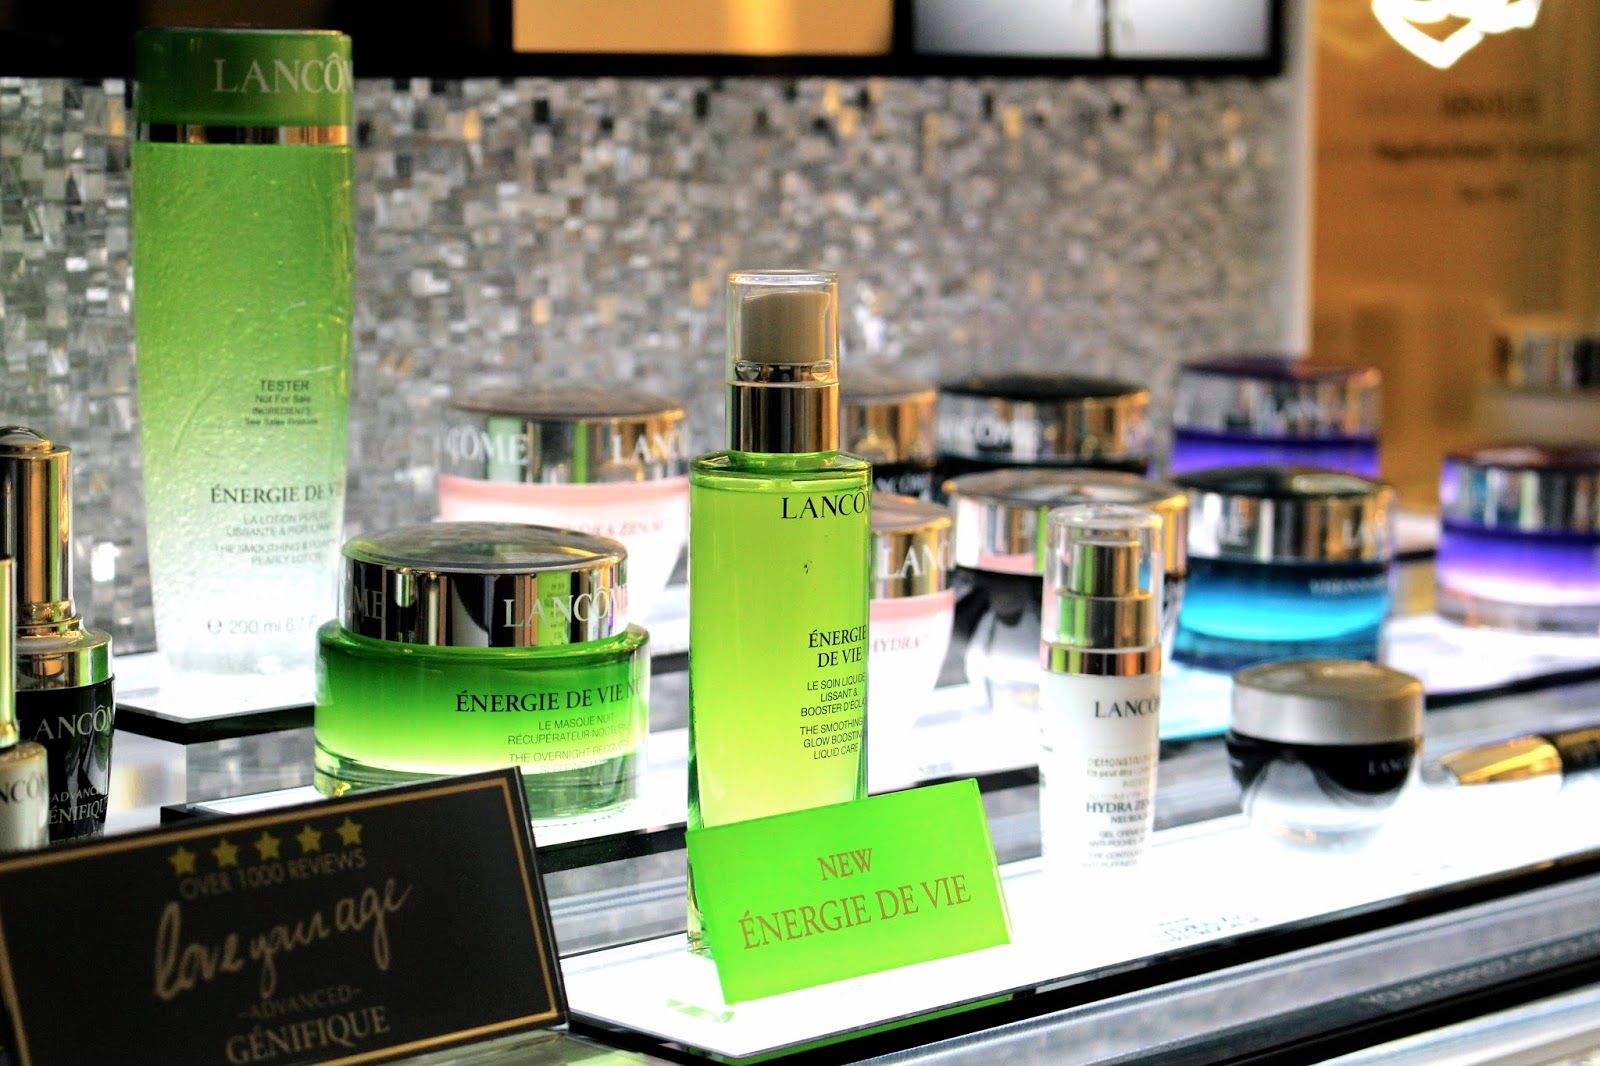 lancome energie de vie display